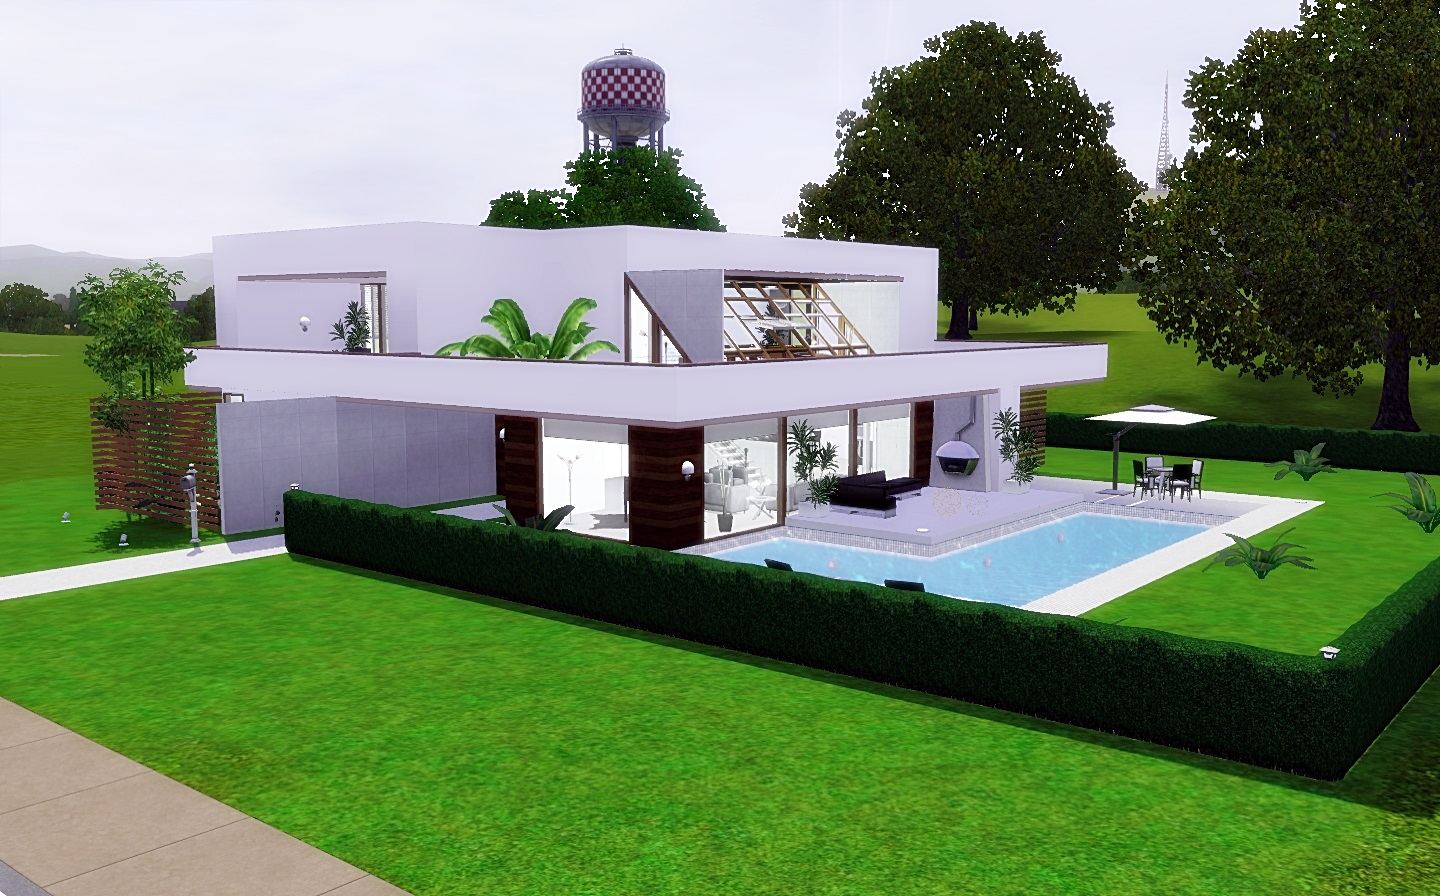 FOR MY SIMS Modern Cozy House from Via Sims